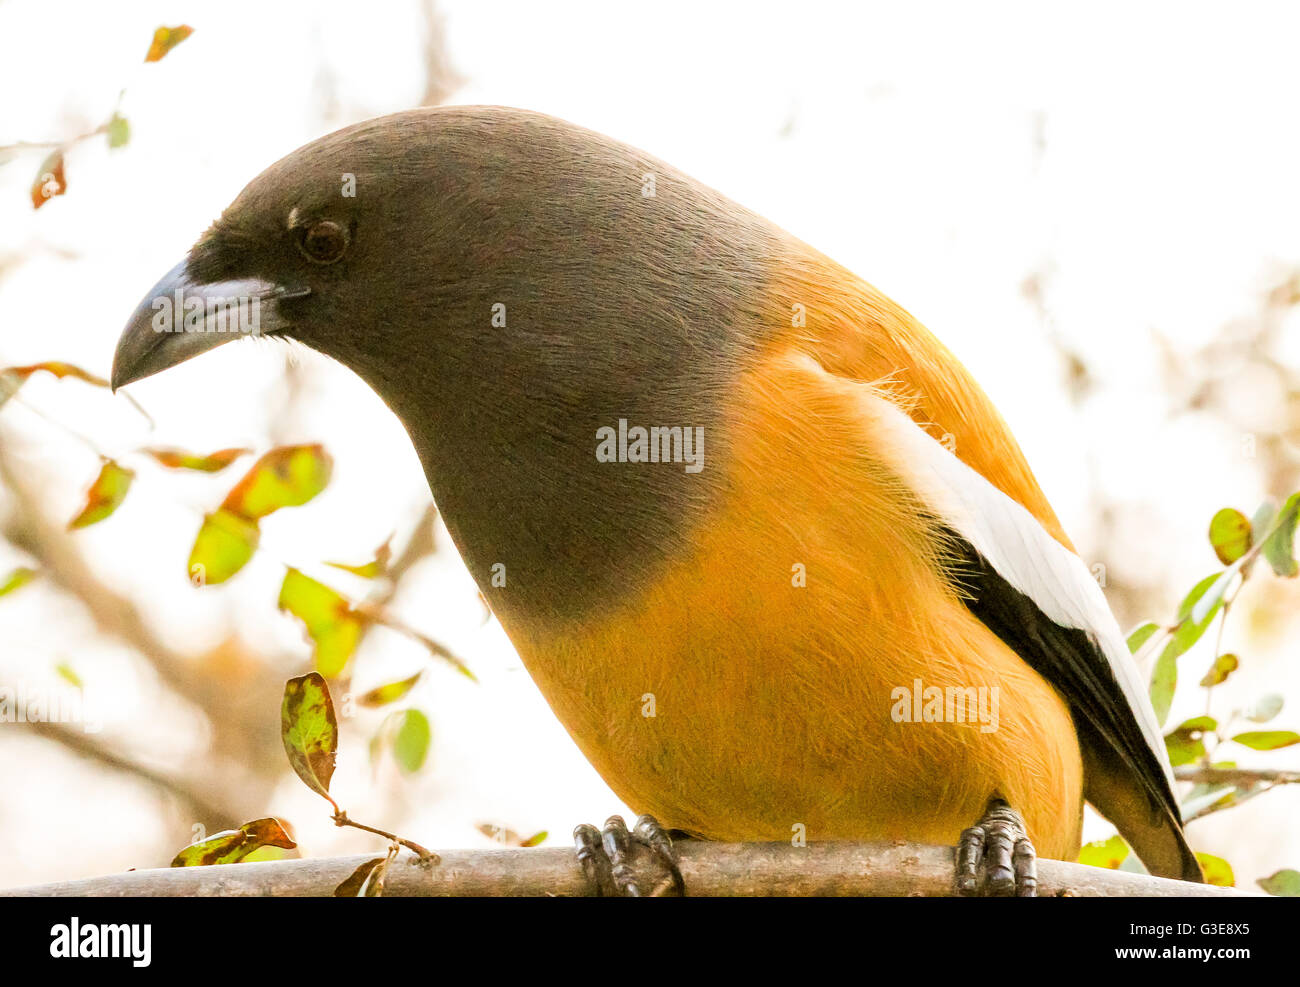 Rufus Treepie bird sitting on a tree in Ranthambore National Park, India - Stock Image